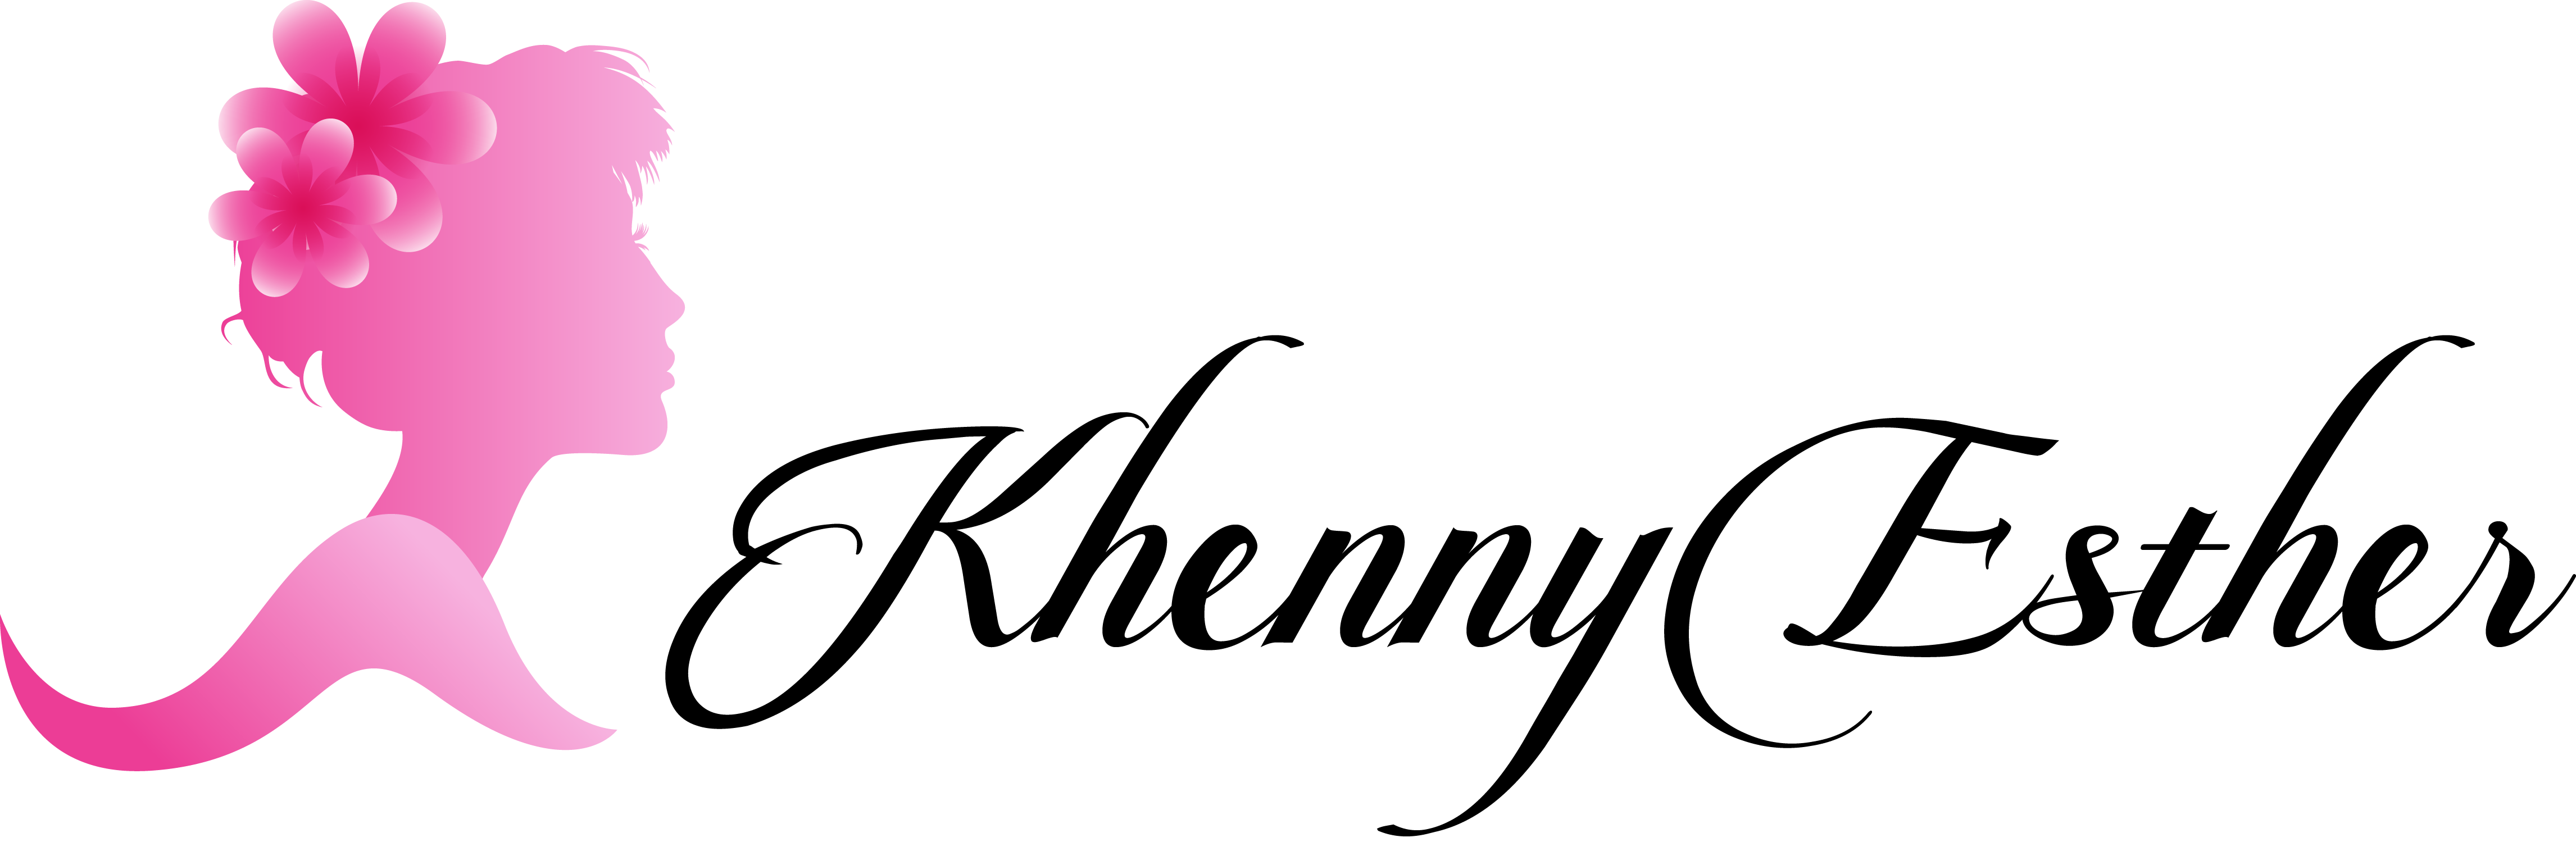 KhennyEsther Wigs: Bringing Out The Real You!